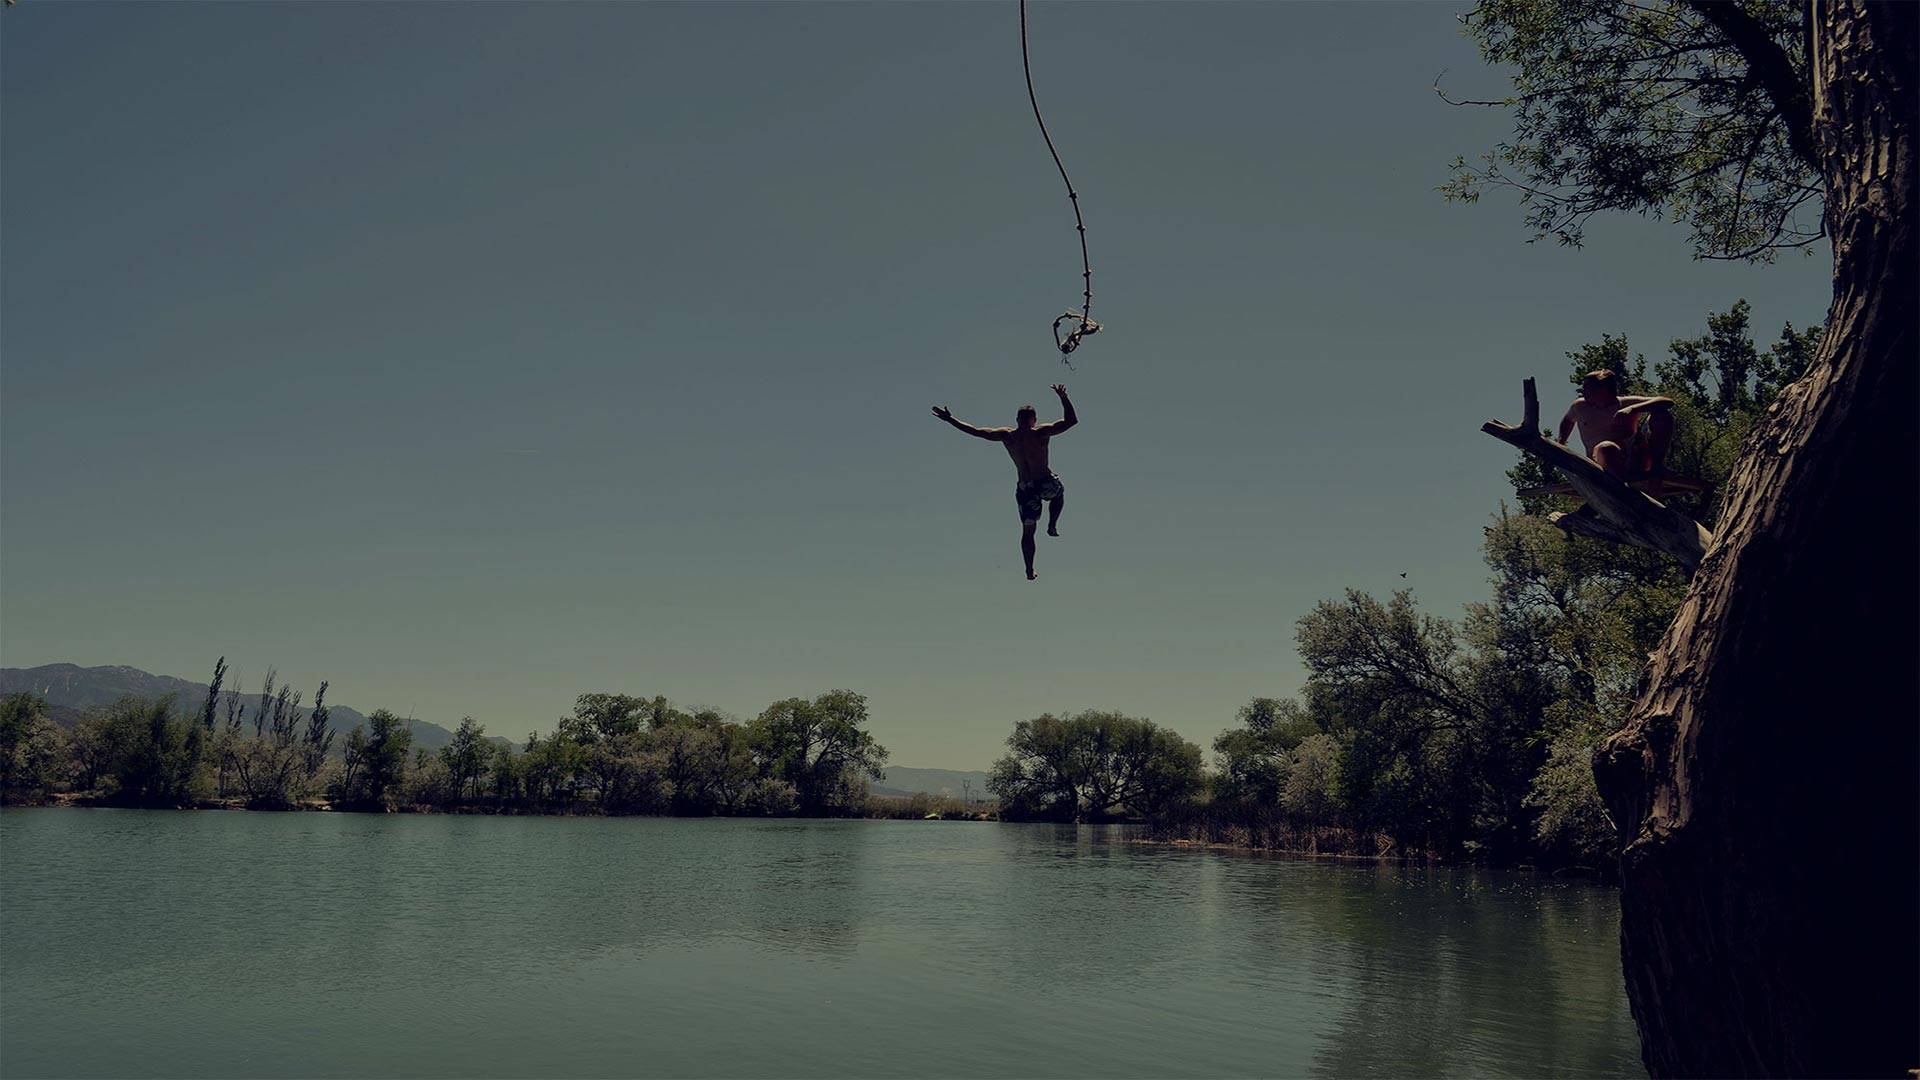 A man is jumping in the water